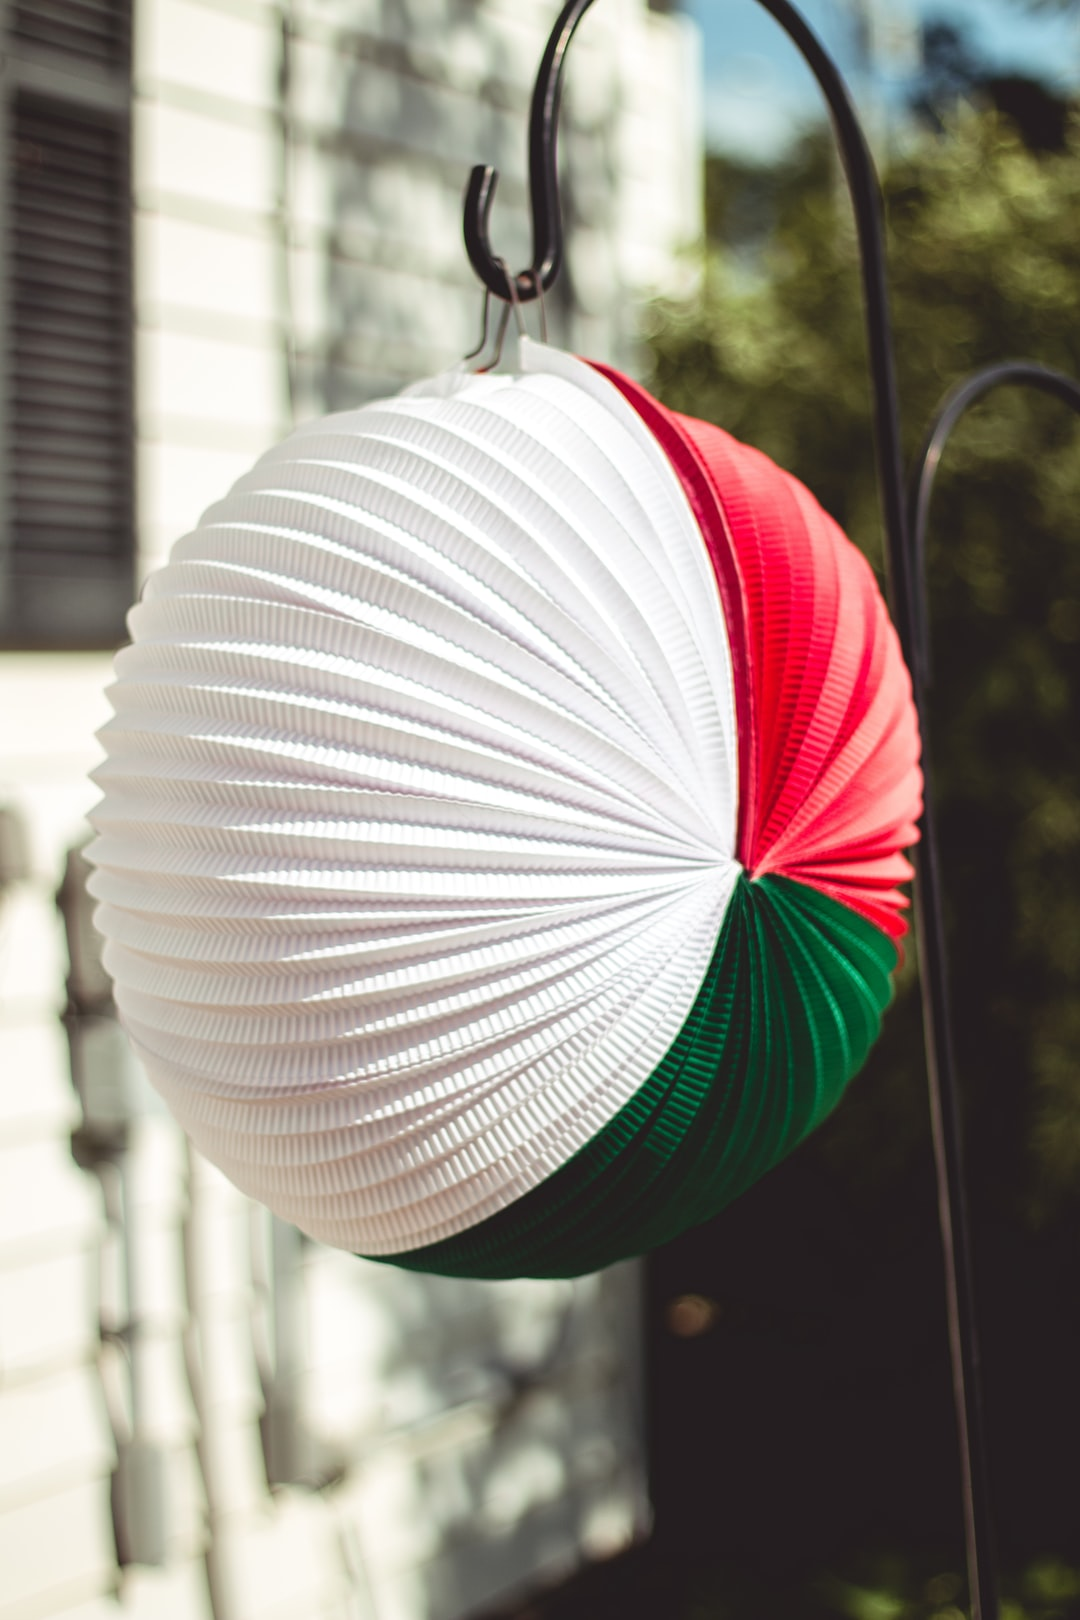 Malagasy Independence